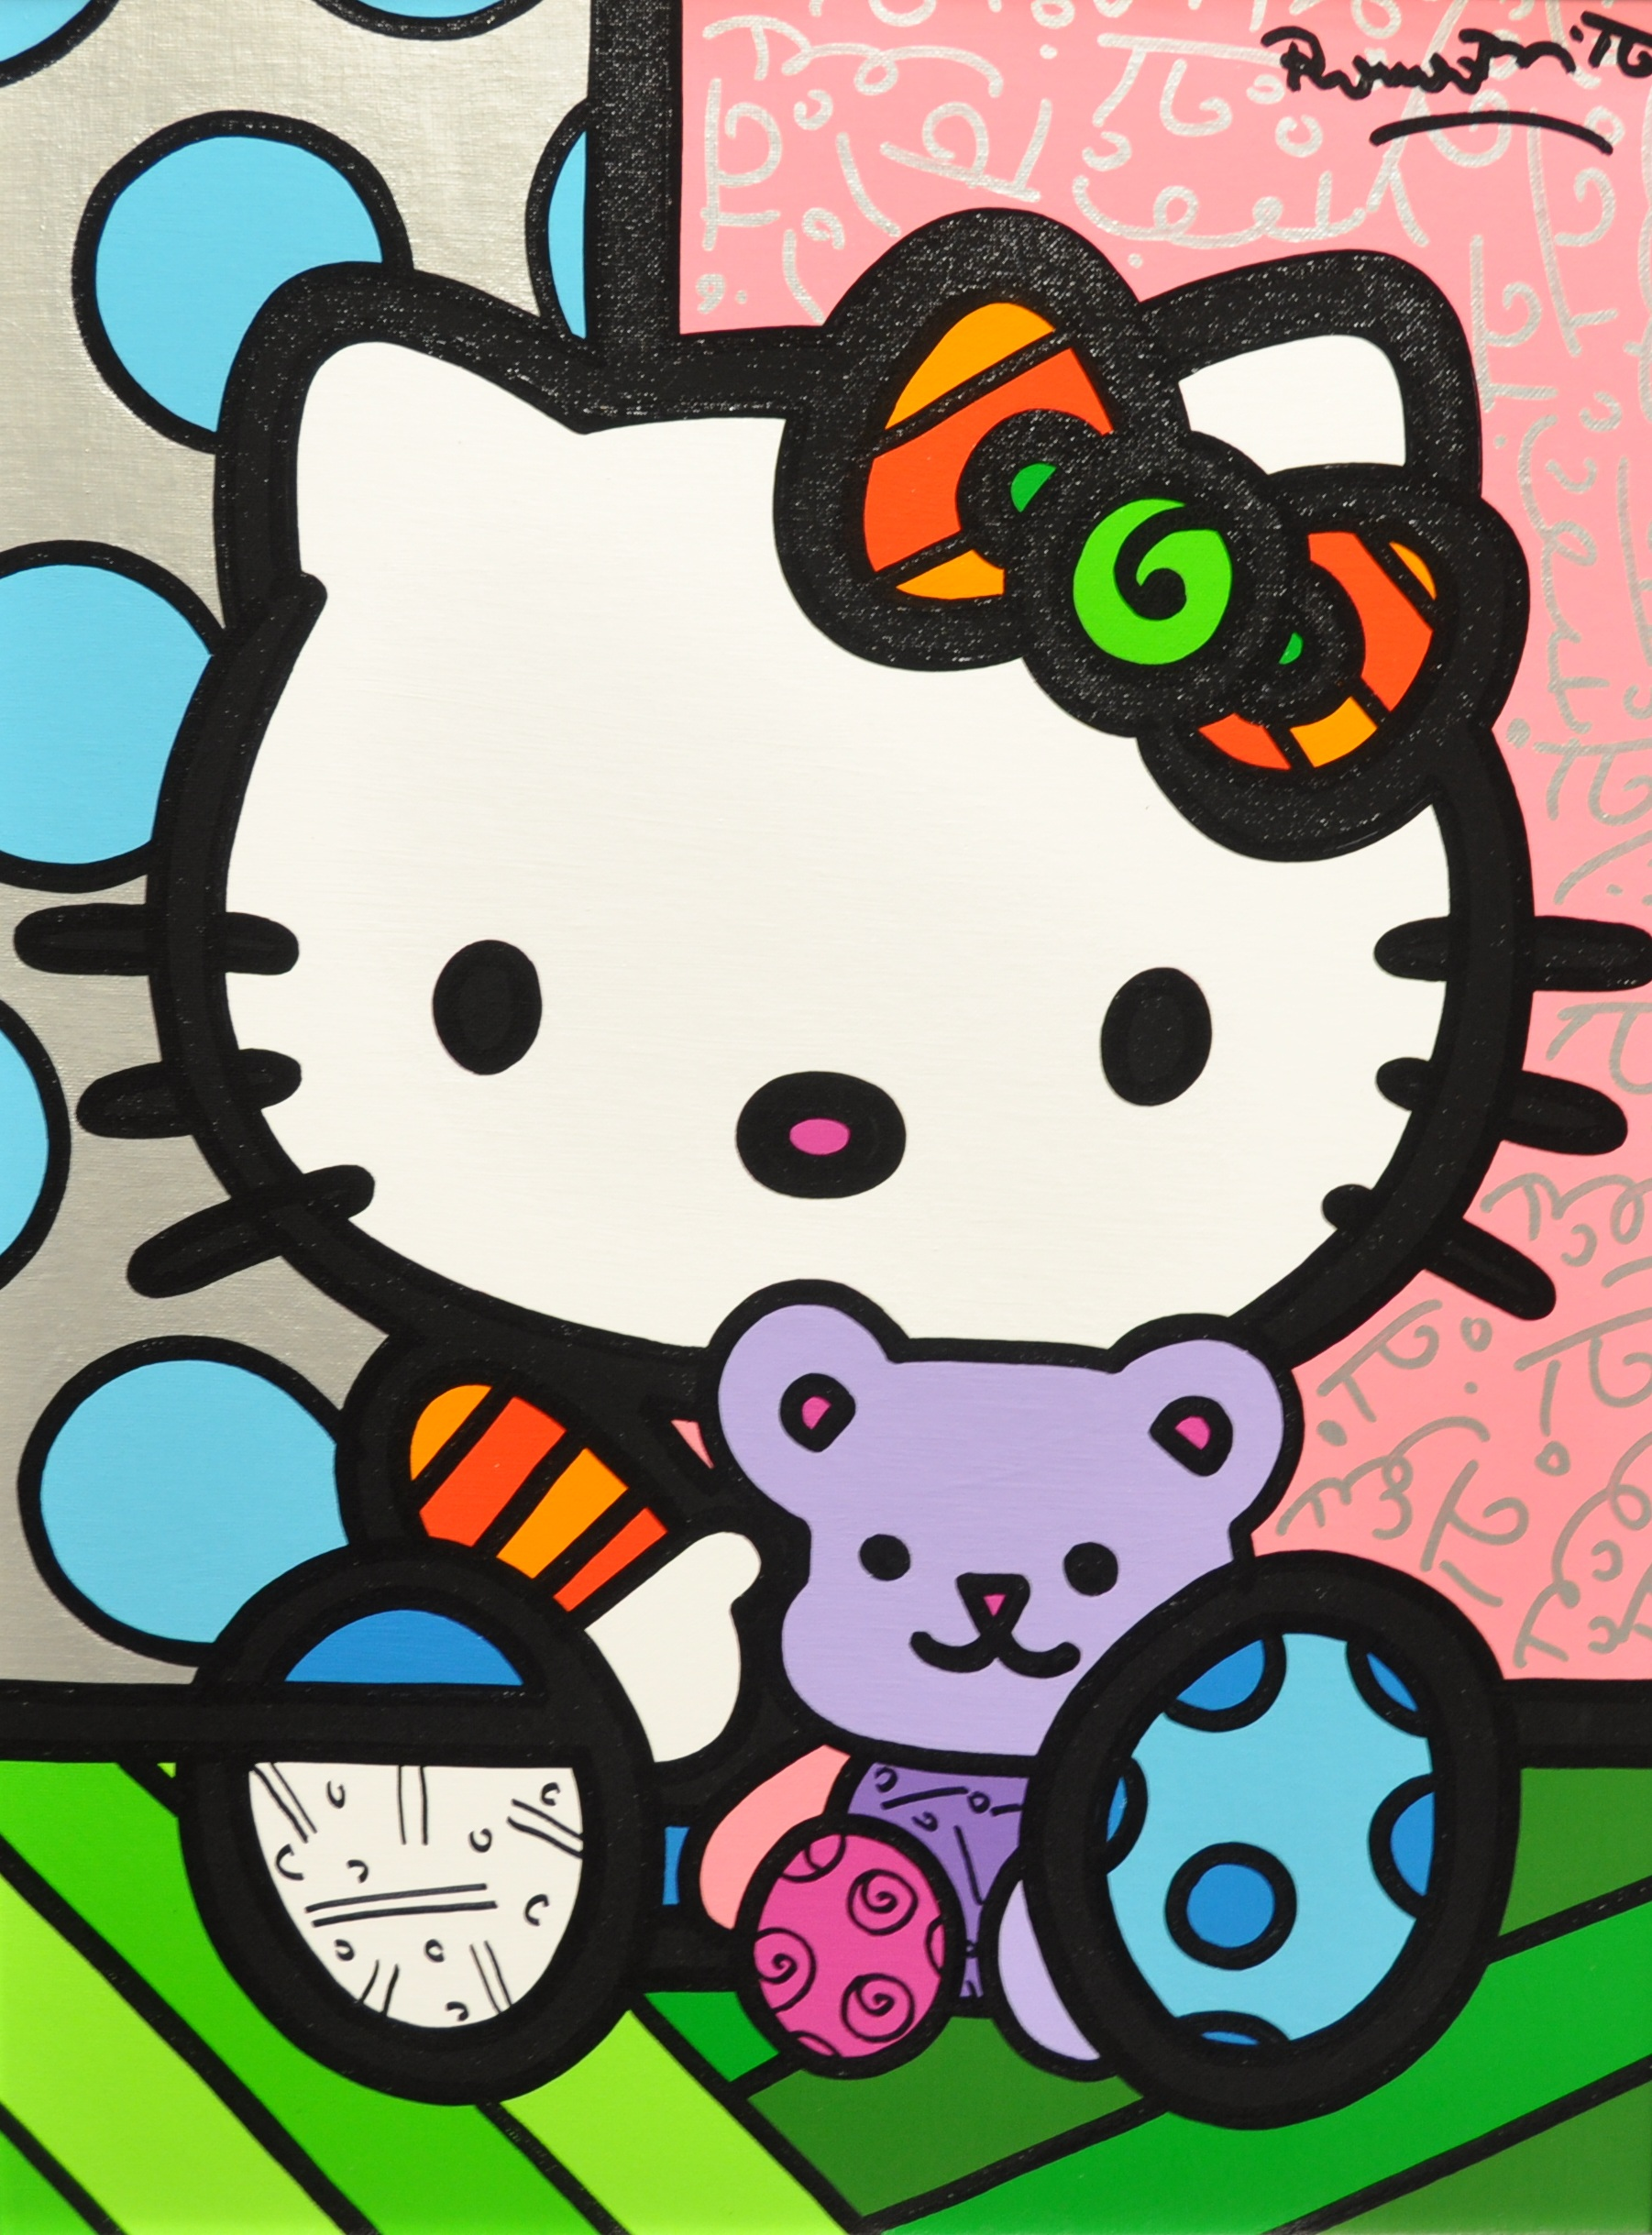 Romero Britto - Best Friends , 5603-012-345